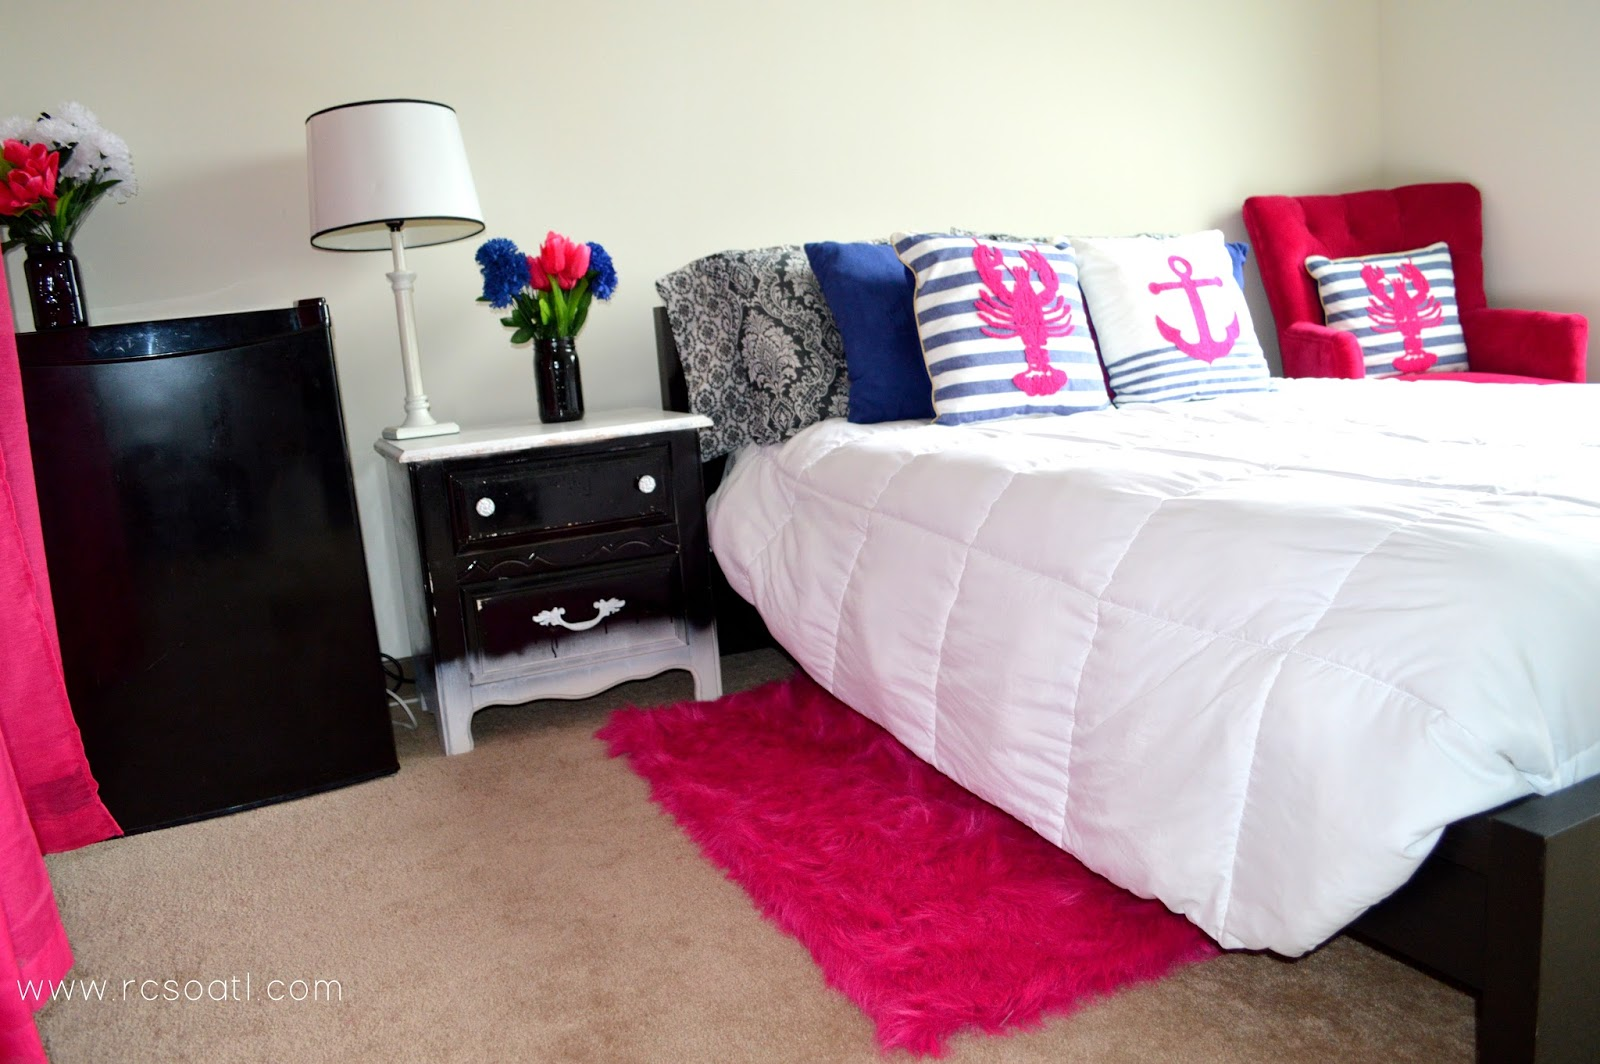 Real College Student Of Atlanta: My New Room! {Hot Pink And Blue Bedroom  Decor}